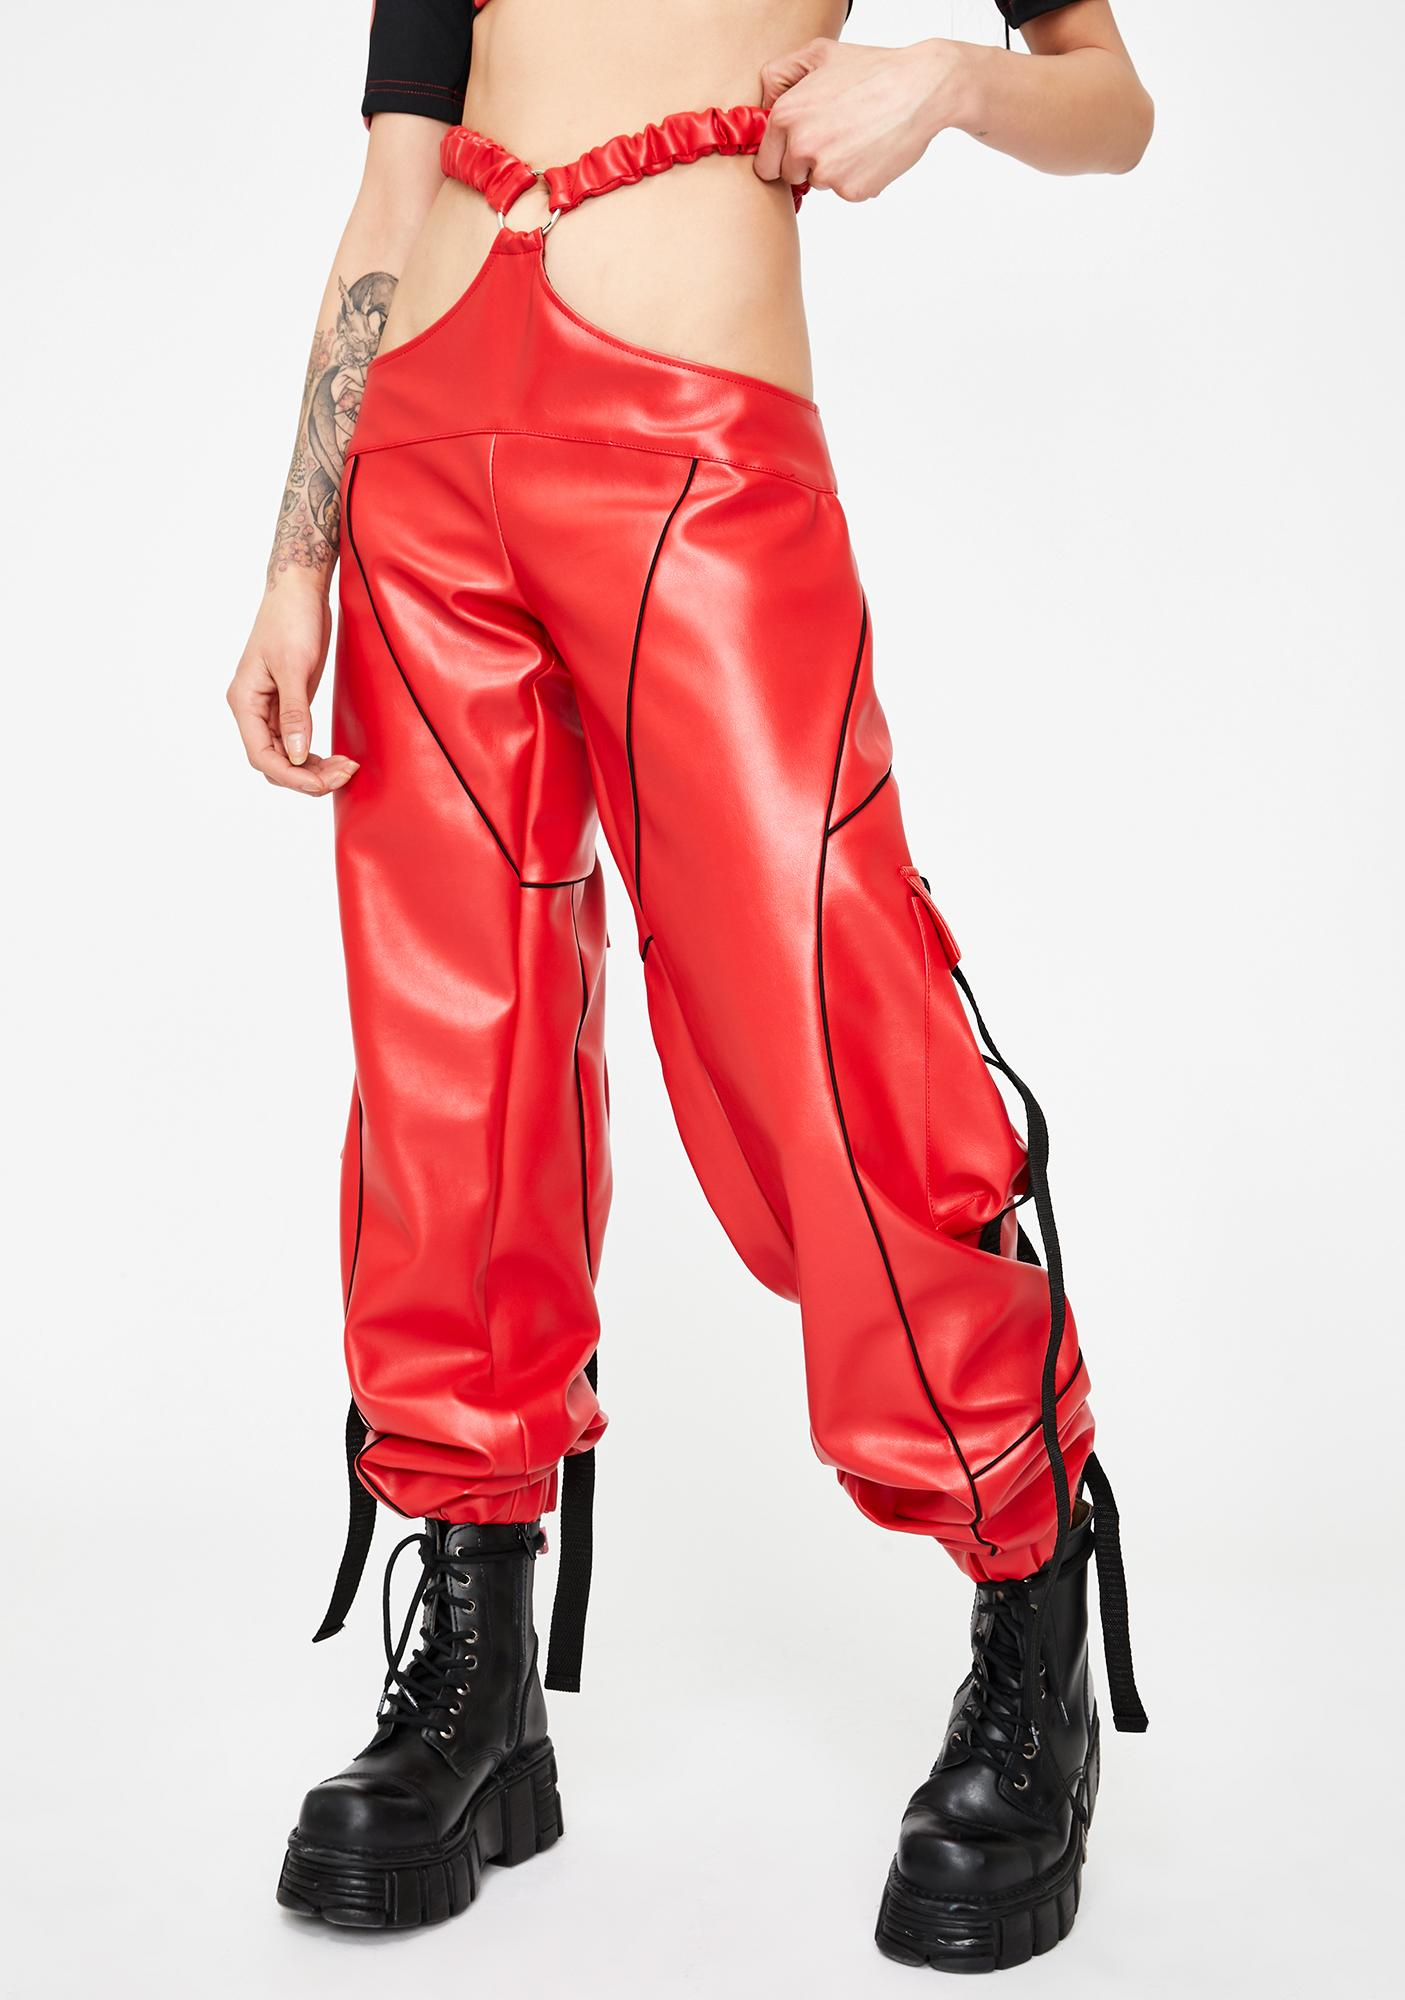 Namilia Red Motocross G-String Trousers